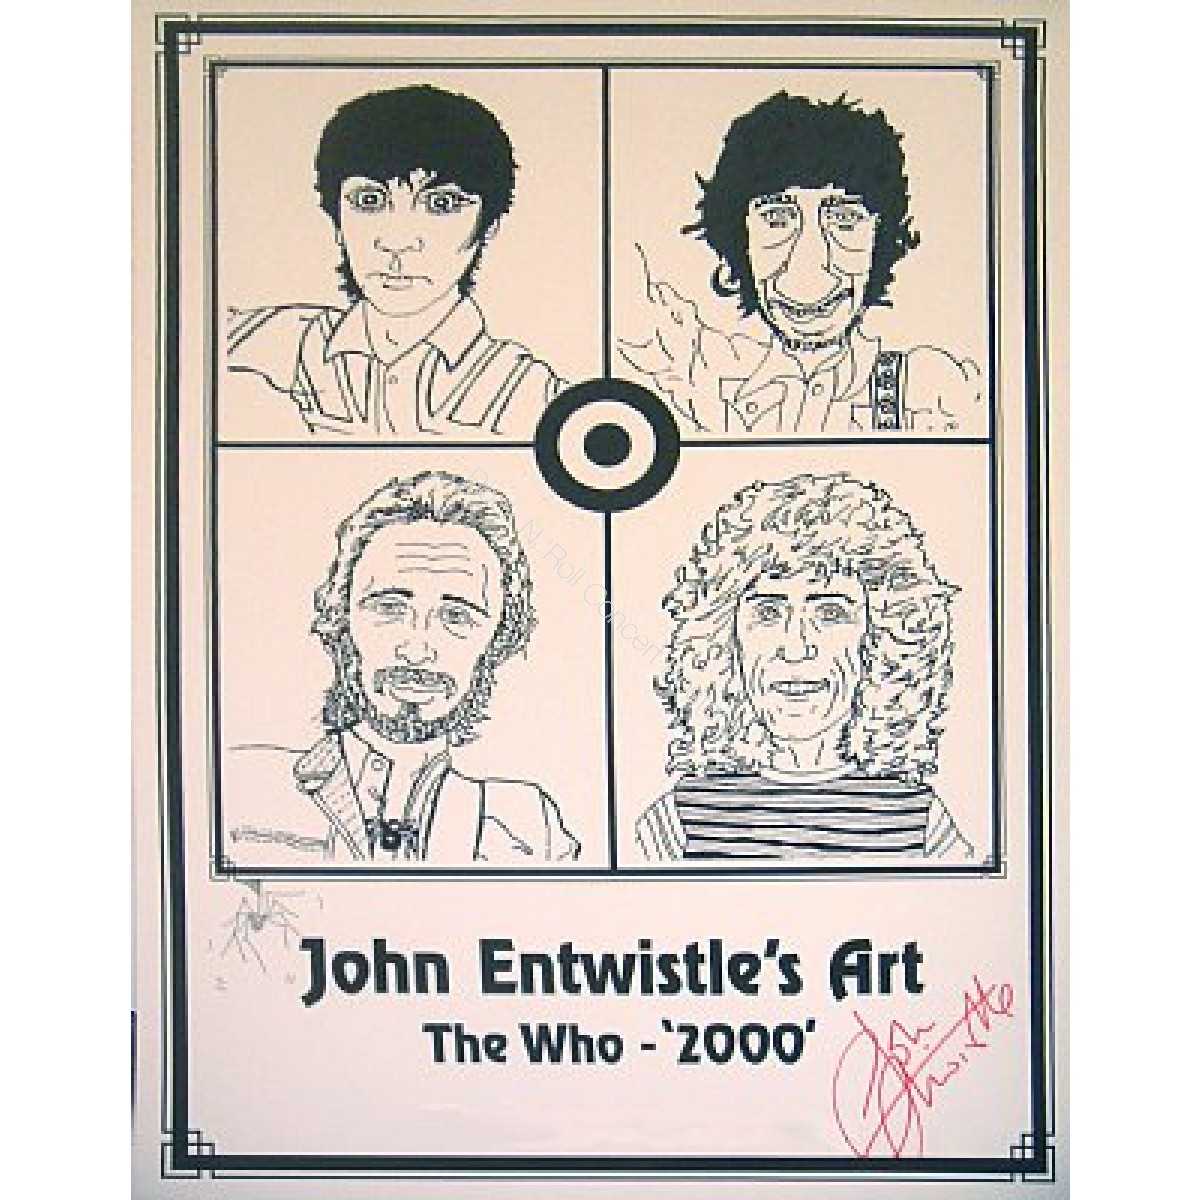 The Who 2000 By John Entwistle with hand signed autograph